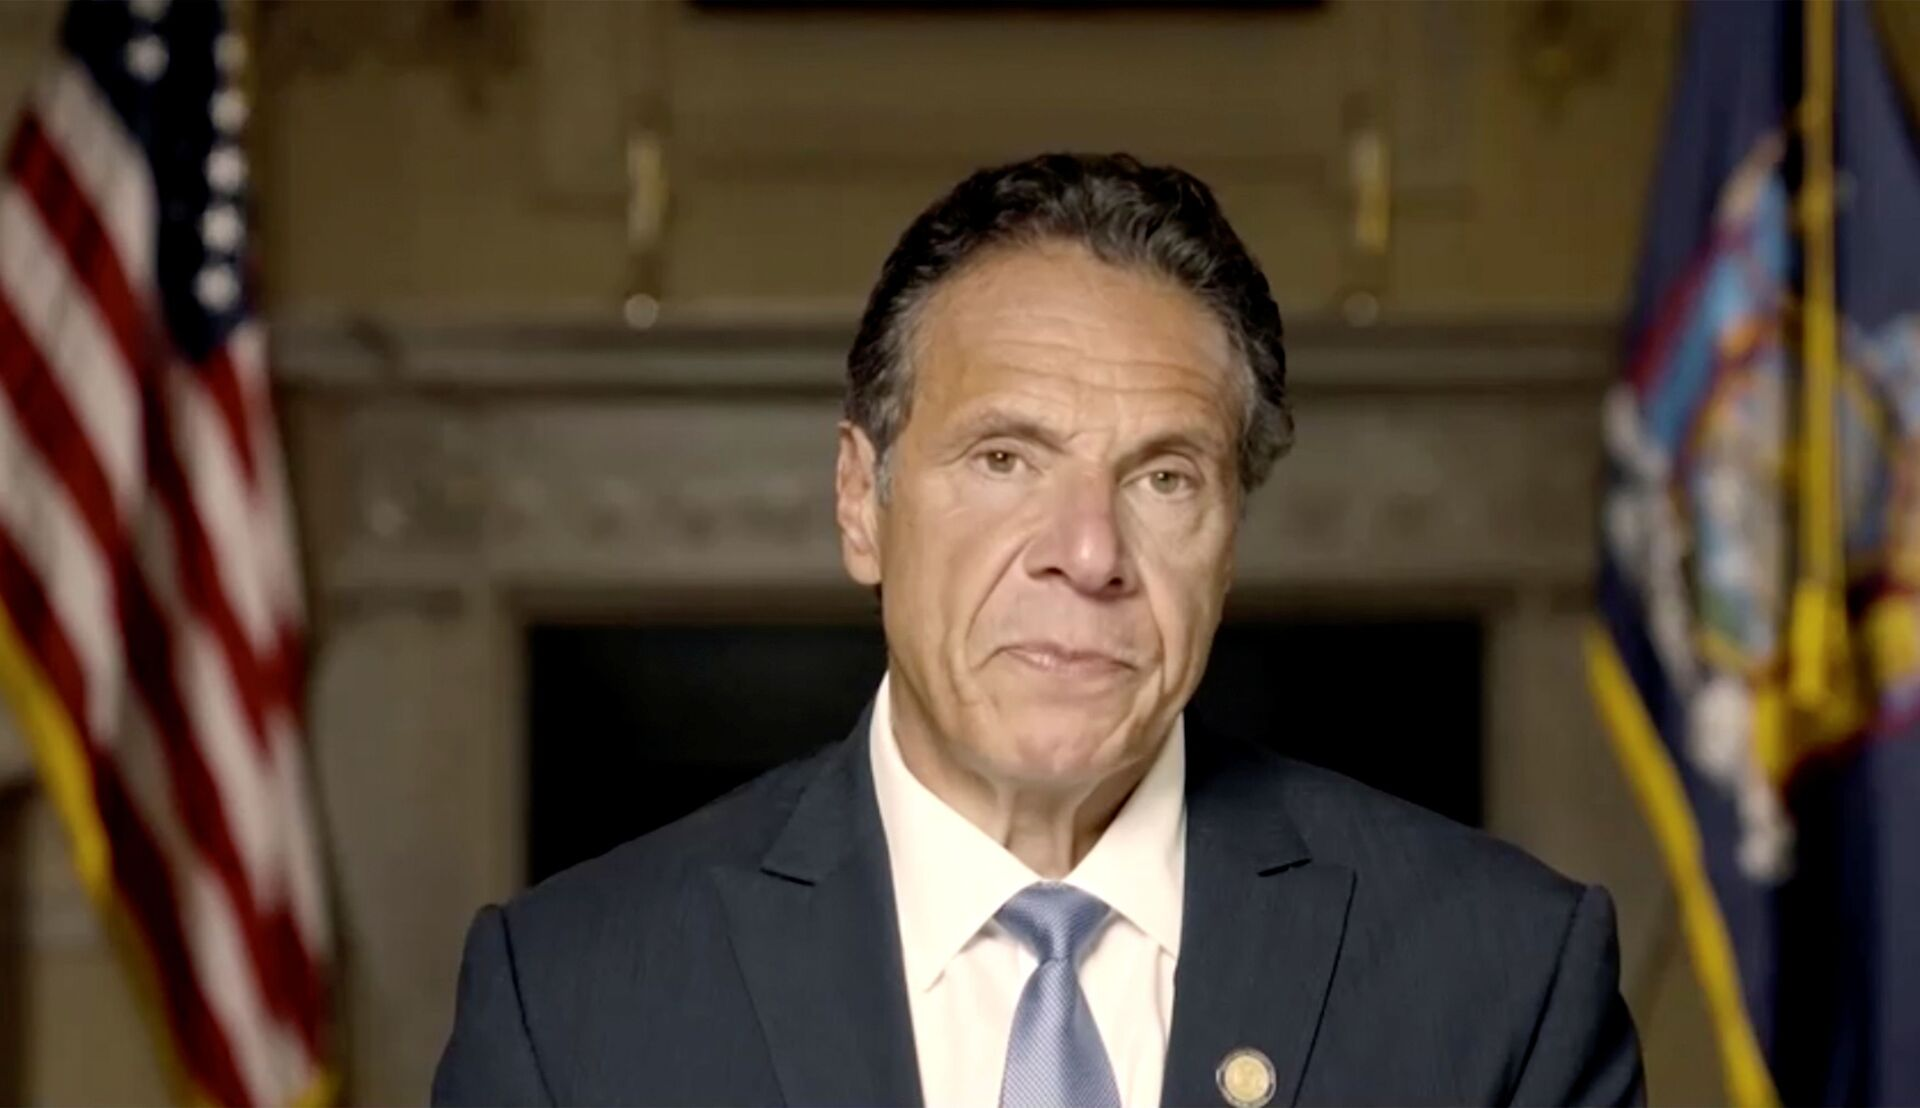 New York Governor Andrew Cuomo makes a statement in this screen grab taken from a pre-recorded video released by Office of the NY Governor, in New York, U.S., August 3, 2021. - Sputnik International, 1920, 07.09.2021